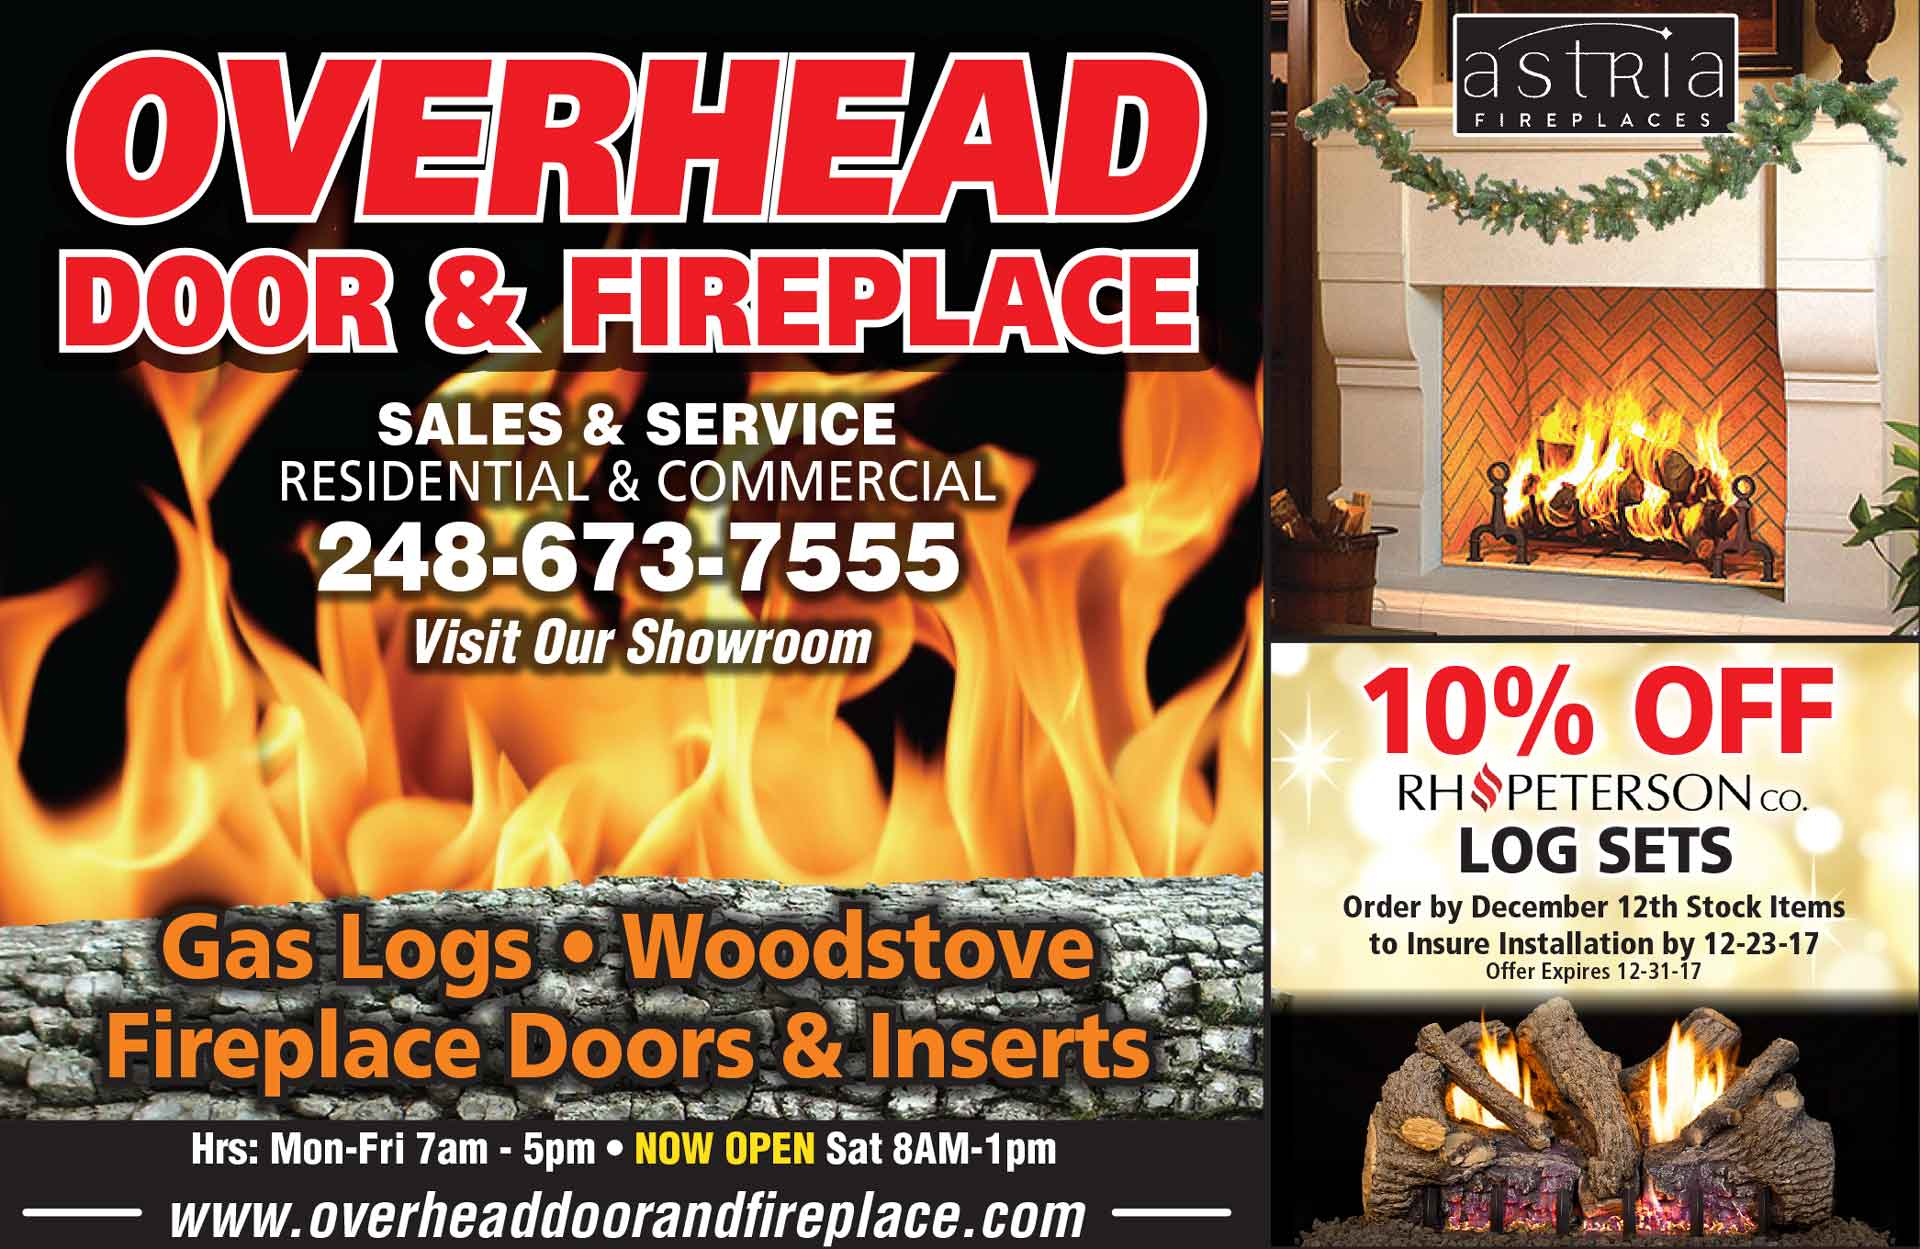 Fireplace Repair Troy Mi Overhead Door Fireplace November Specials Overhead Door